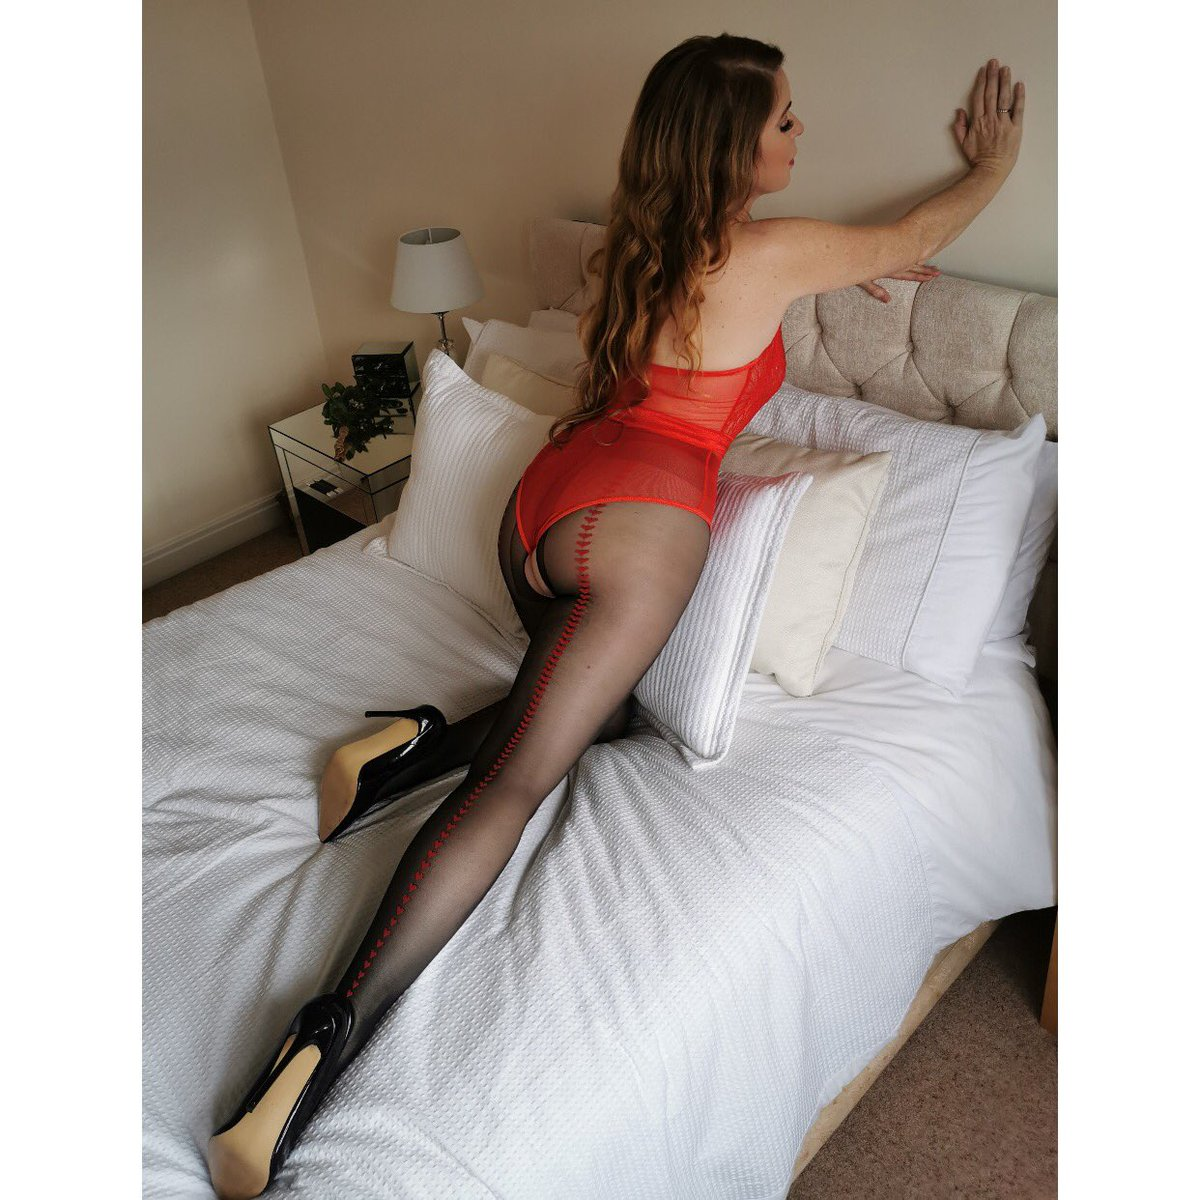 #happysunday ❤️❤️ @sharonjanney wearing Miss O's P112, stunning. Check out her insta 😍 #pantyhose #holdups #nylons #instafollow #instagramcollaborator #instacollaborations #regram #repost #instagirls💋 #sharonjanney @SharonJanney